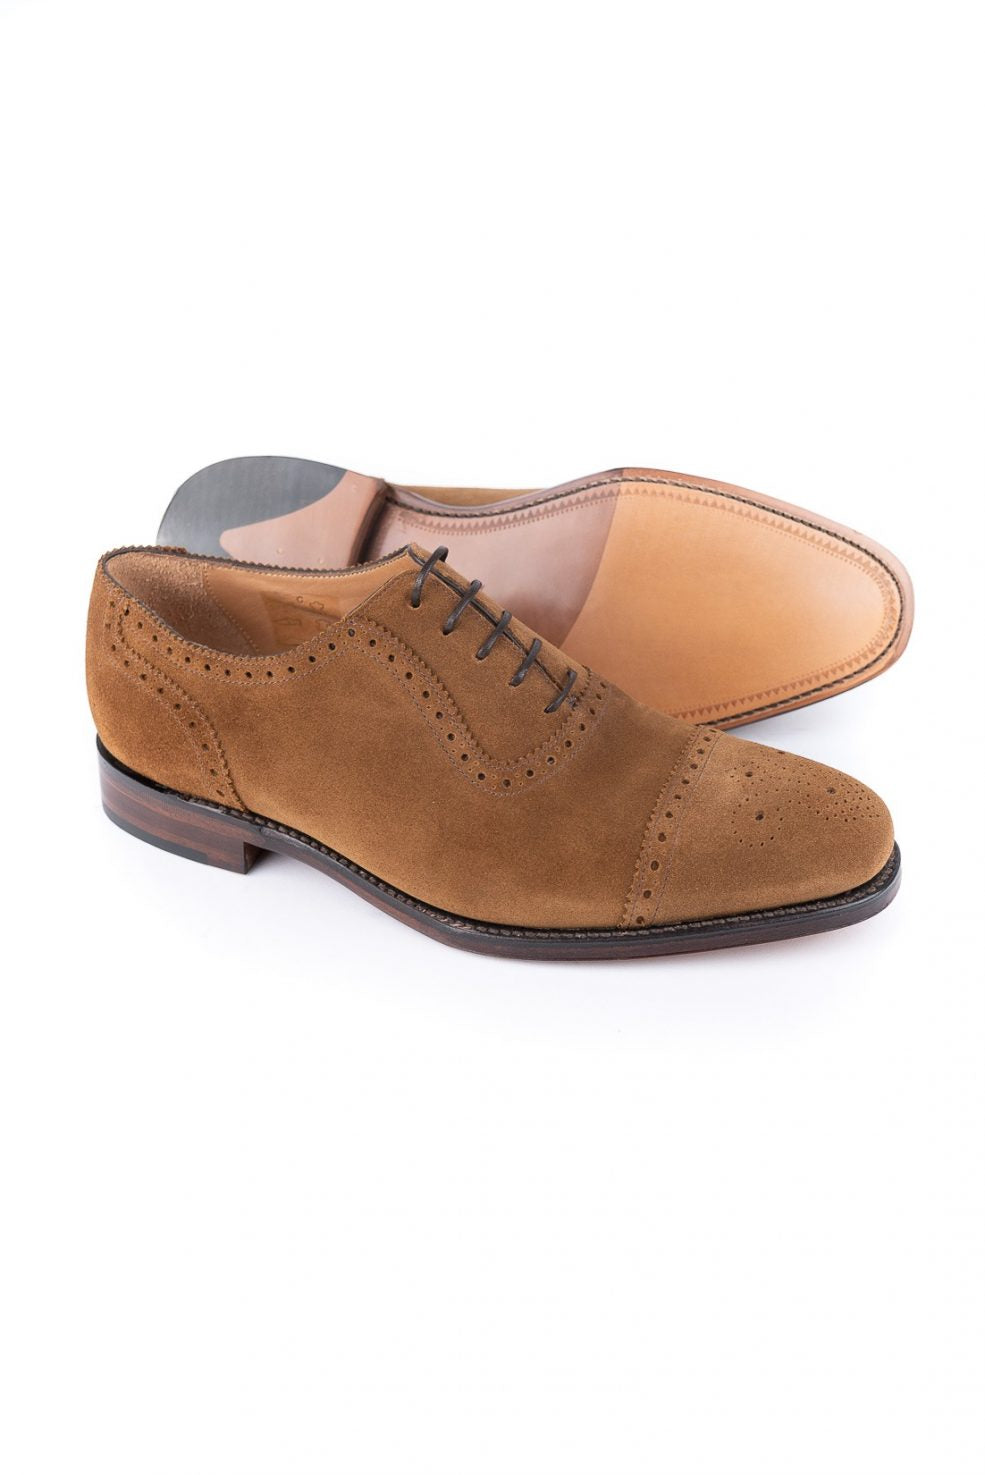 Loake Men's Strand TS Leather Semi Brogue Shoes Tobacco Suede